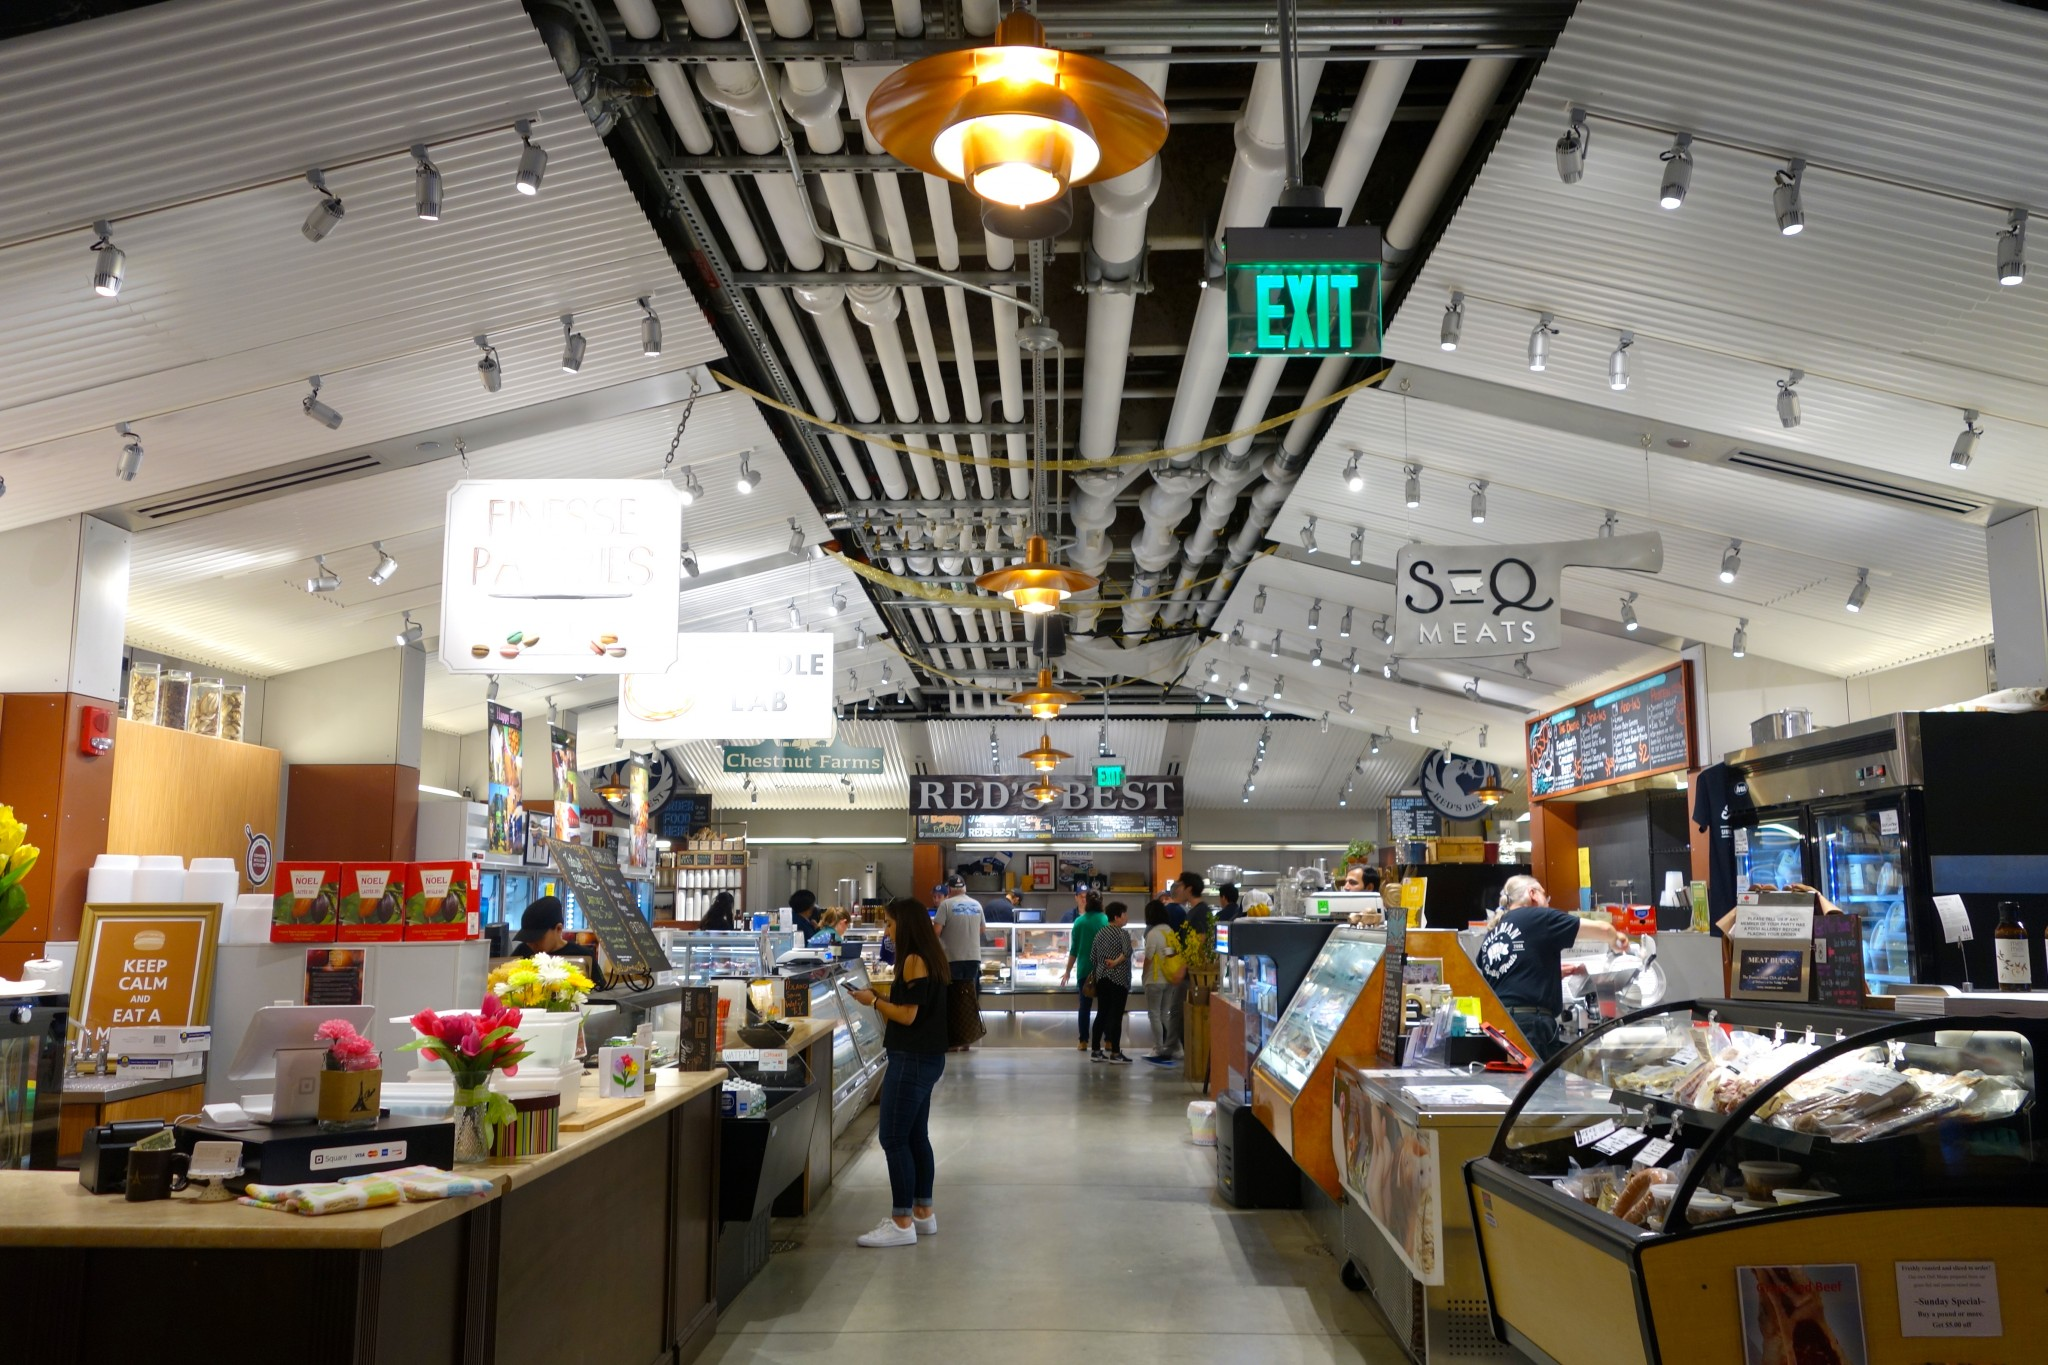 boston public market, the-alyst.com